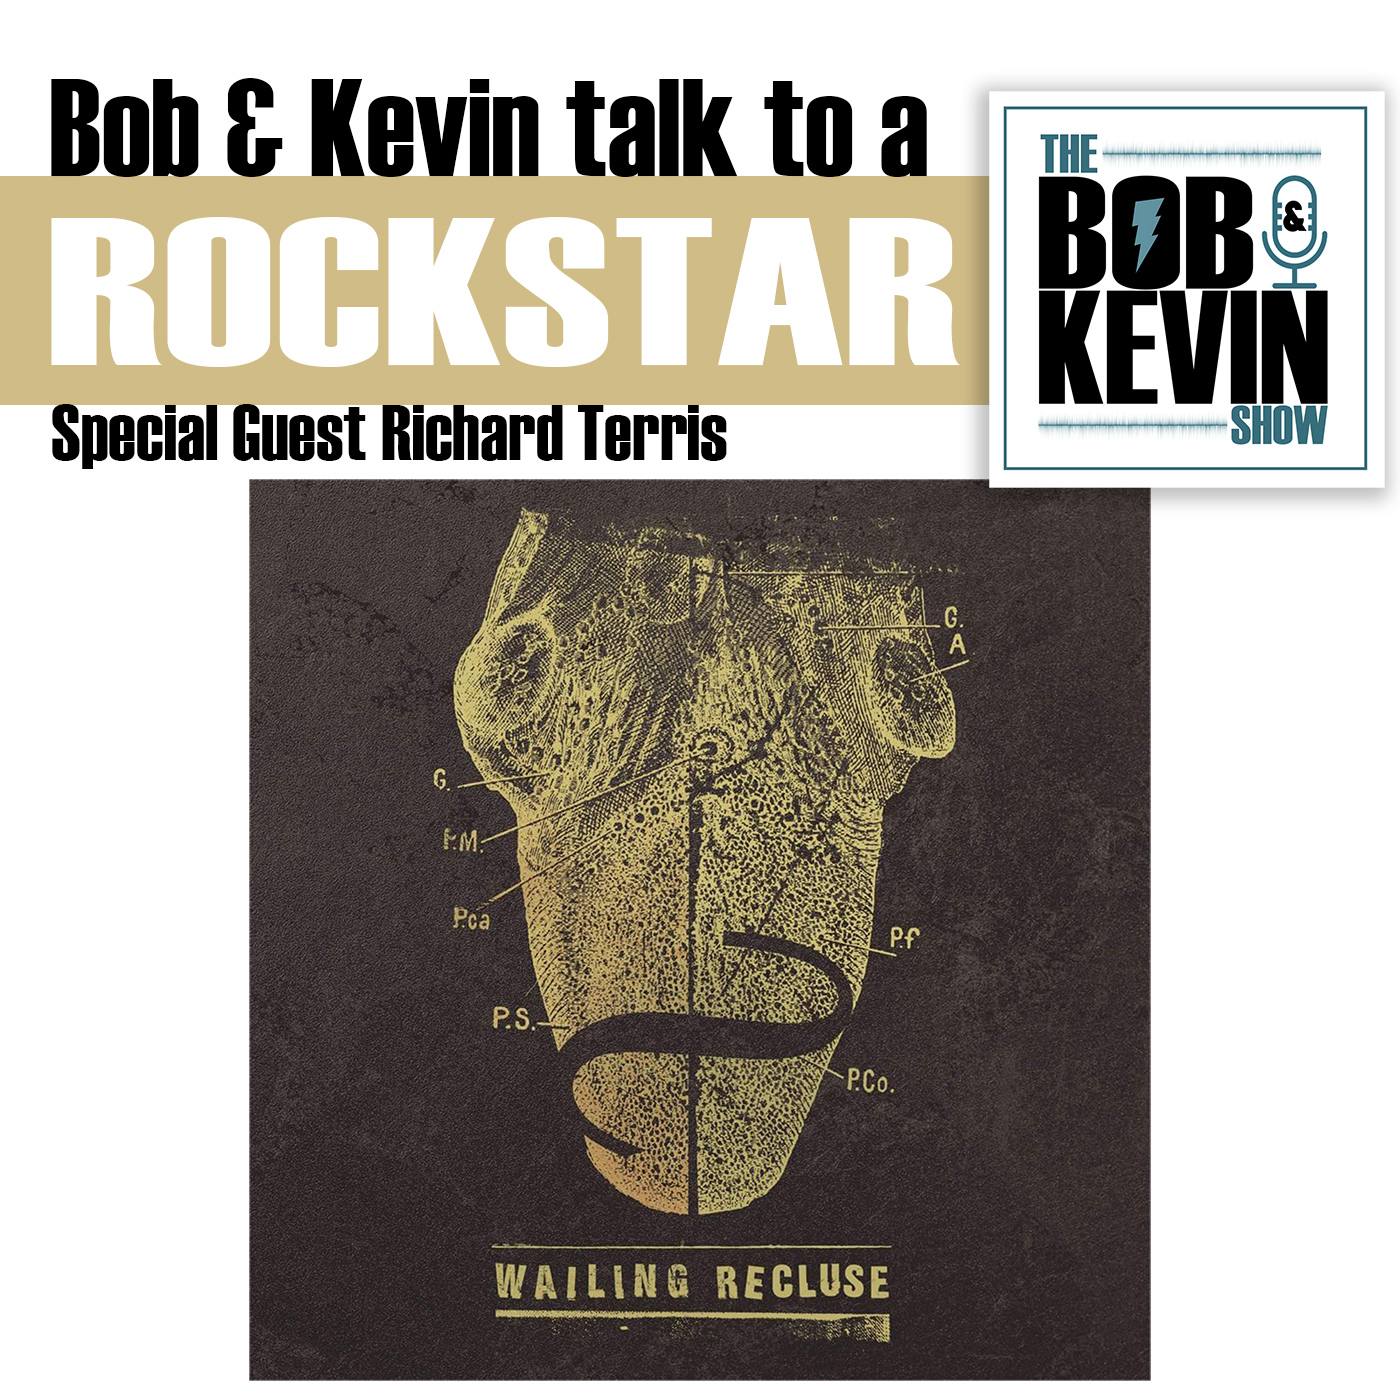 Ep. 020 - Bob & Kevin talk tech with self-produced rockstar and application developer Richard Terris